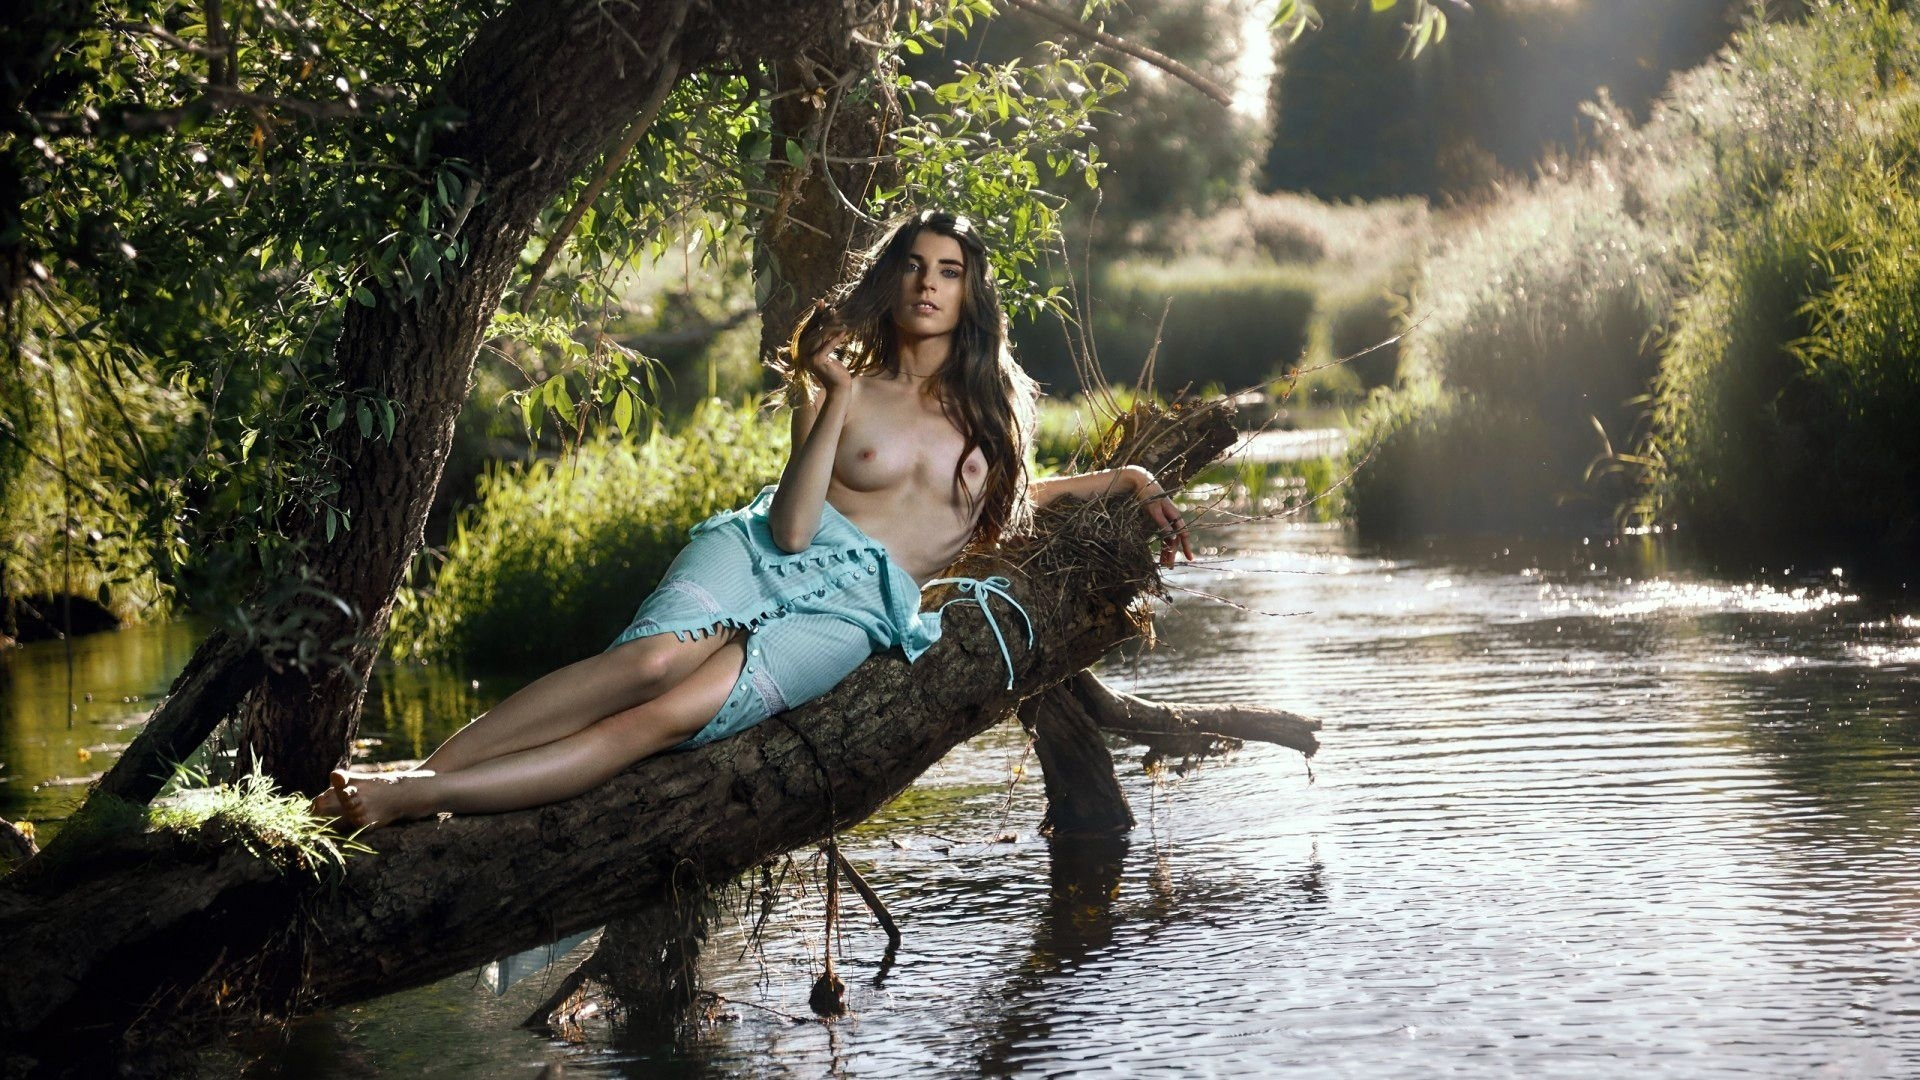 Young topless woman in a river image